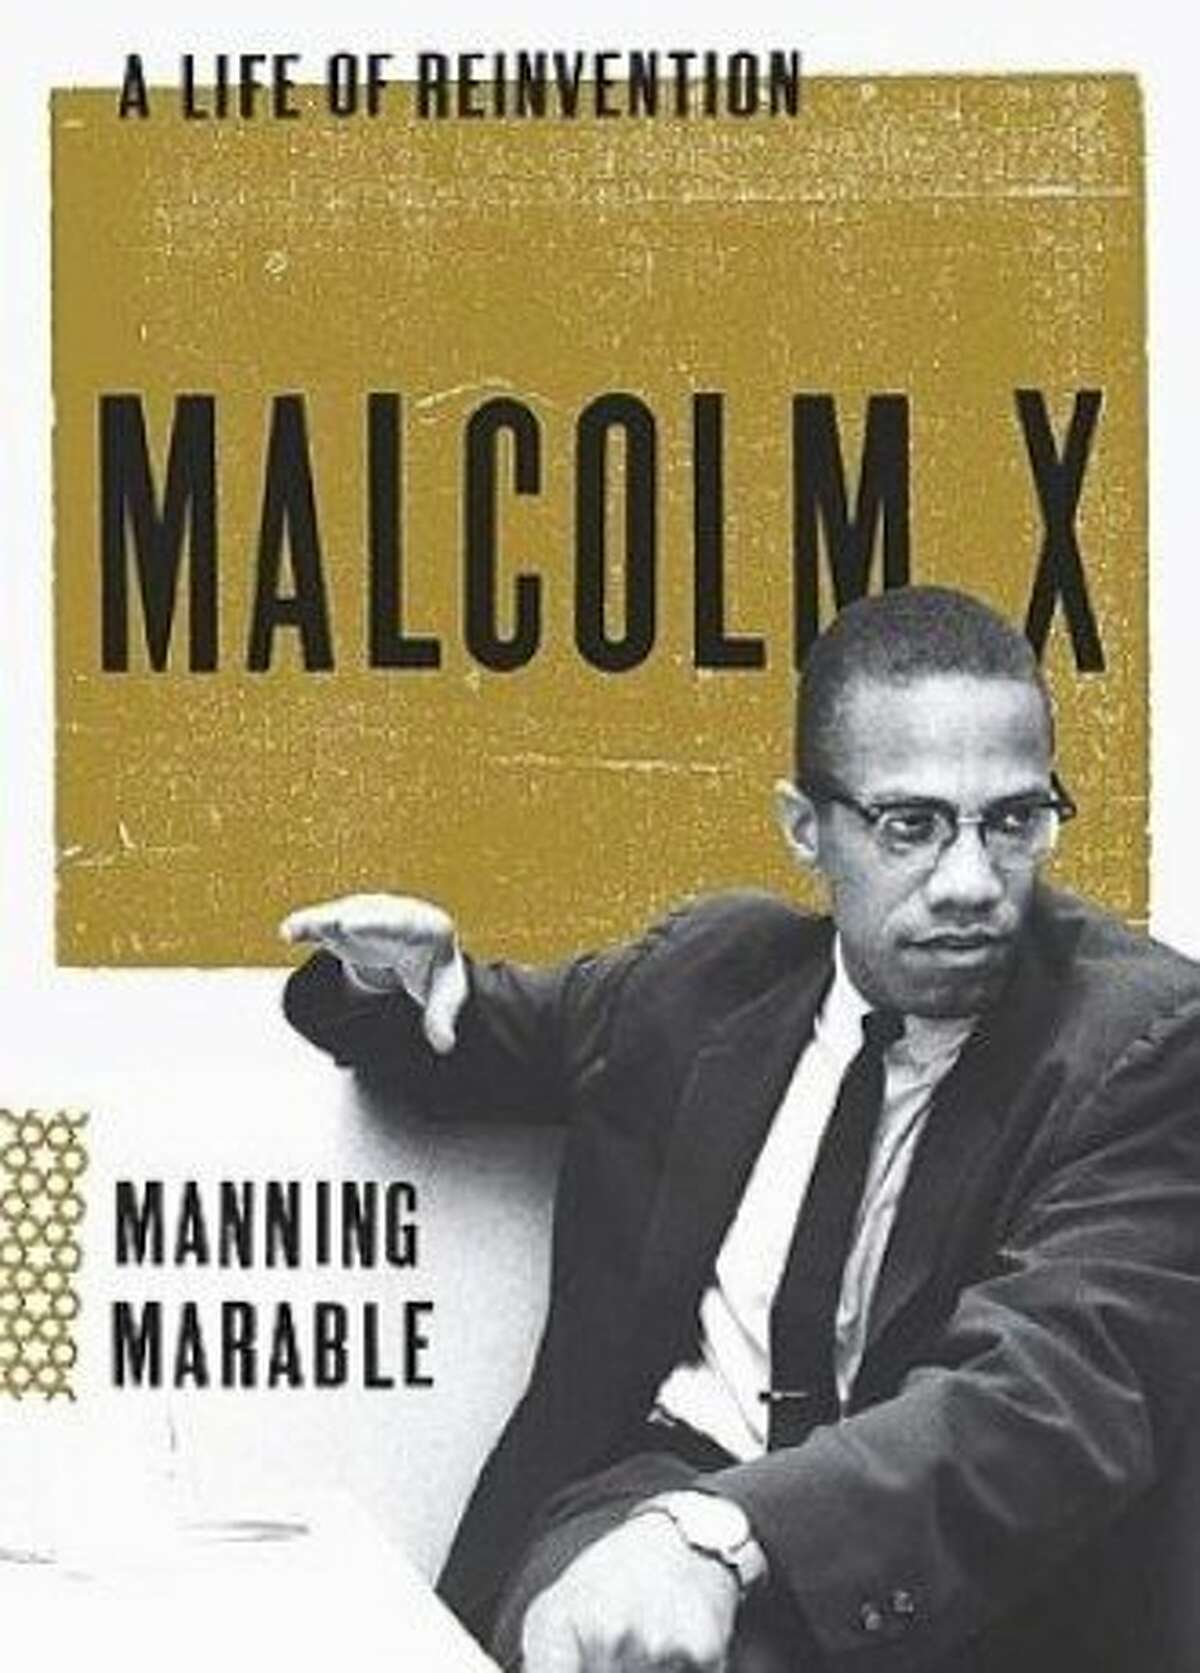 Malcolm X: A Life of Reinvention, by Manning Marable